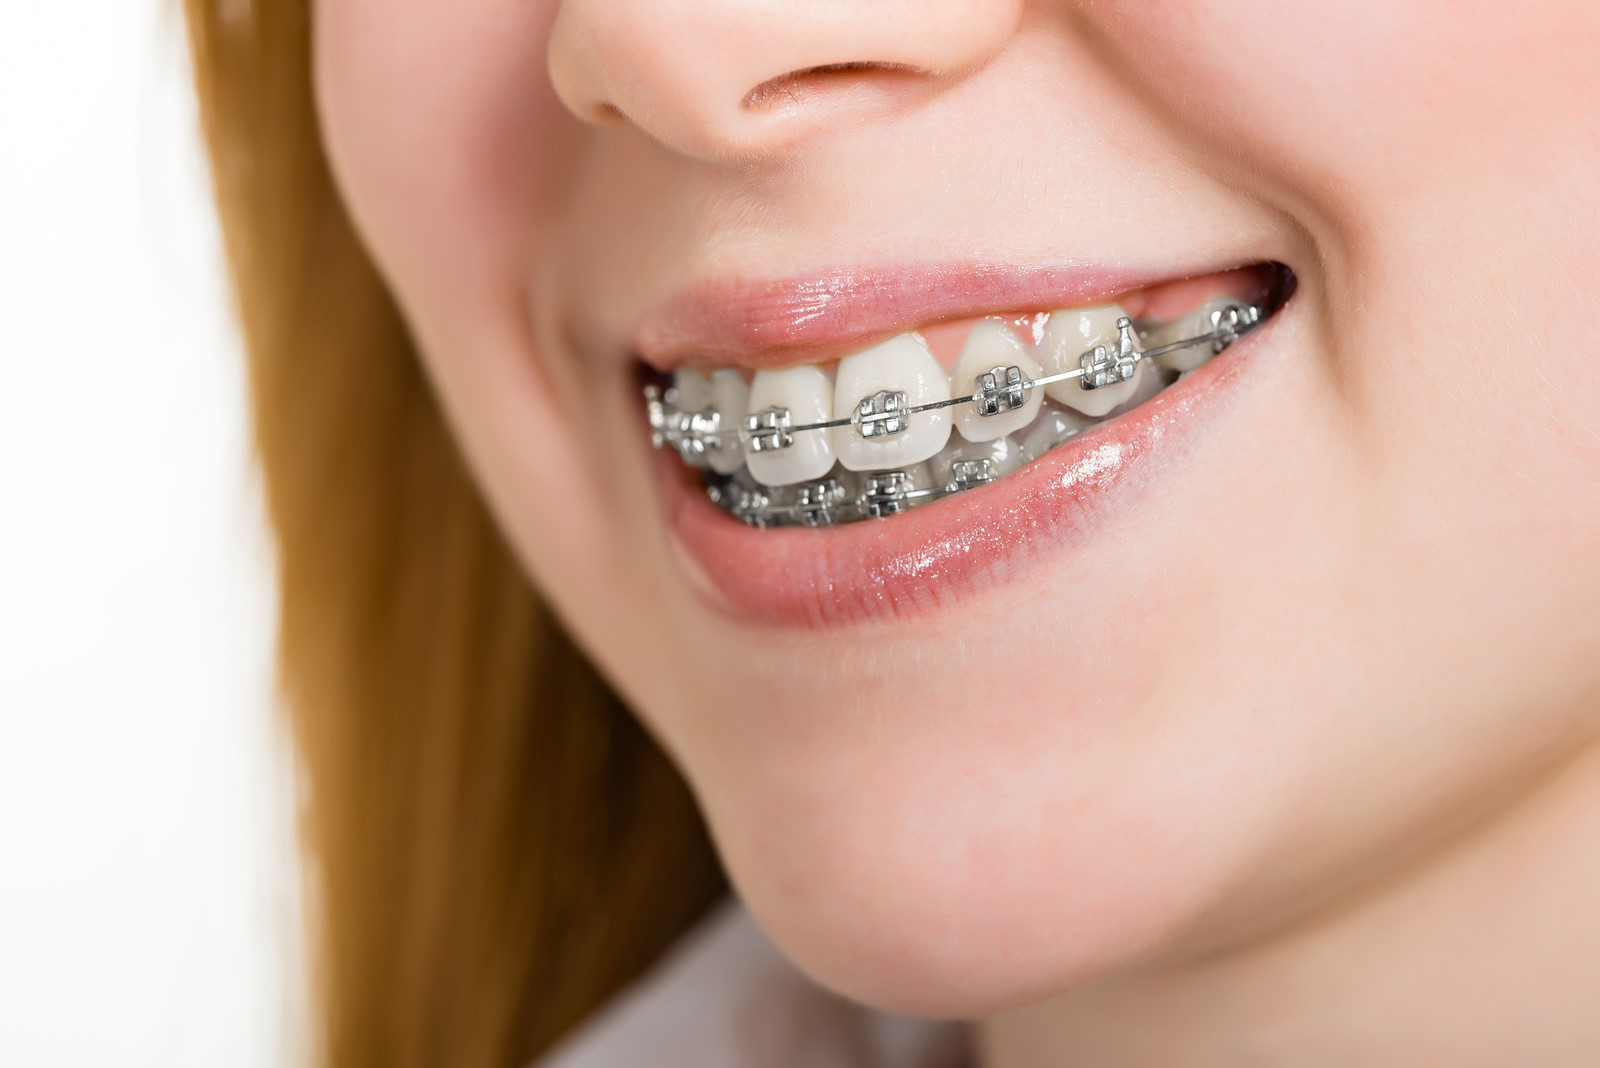 We have the best orthodontists in Canberra.